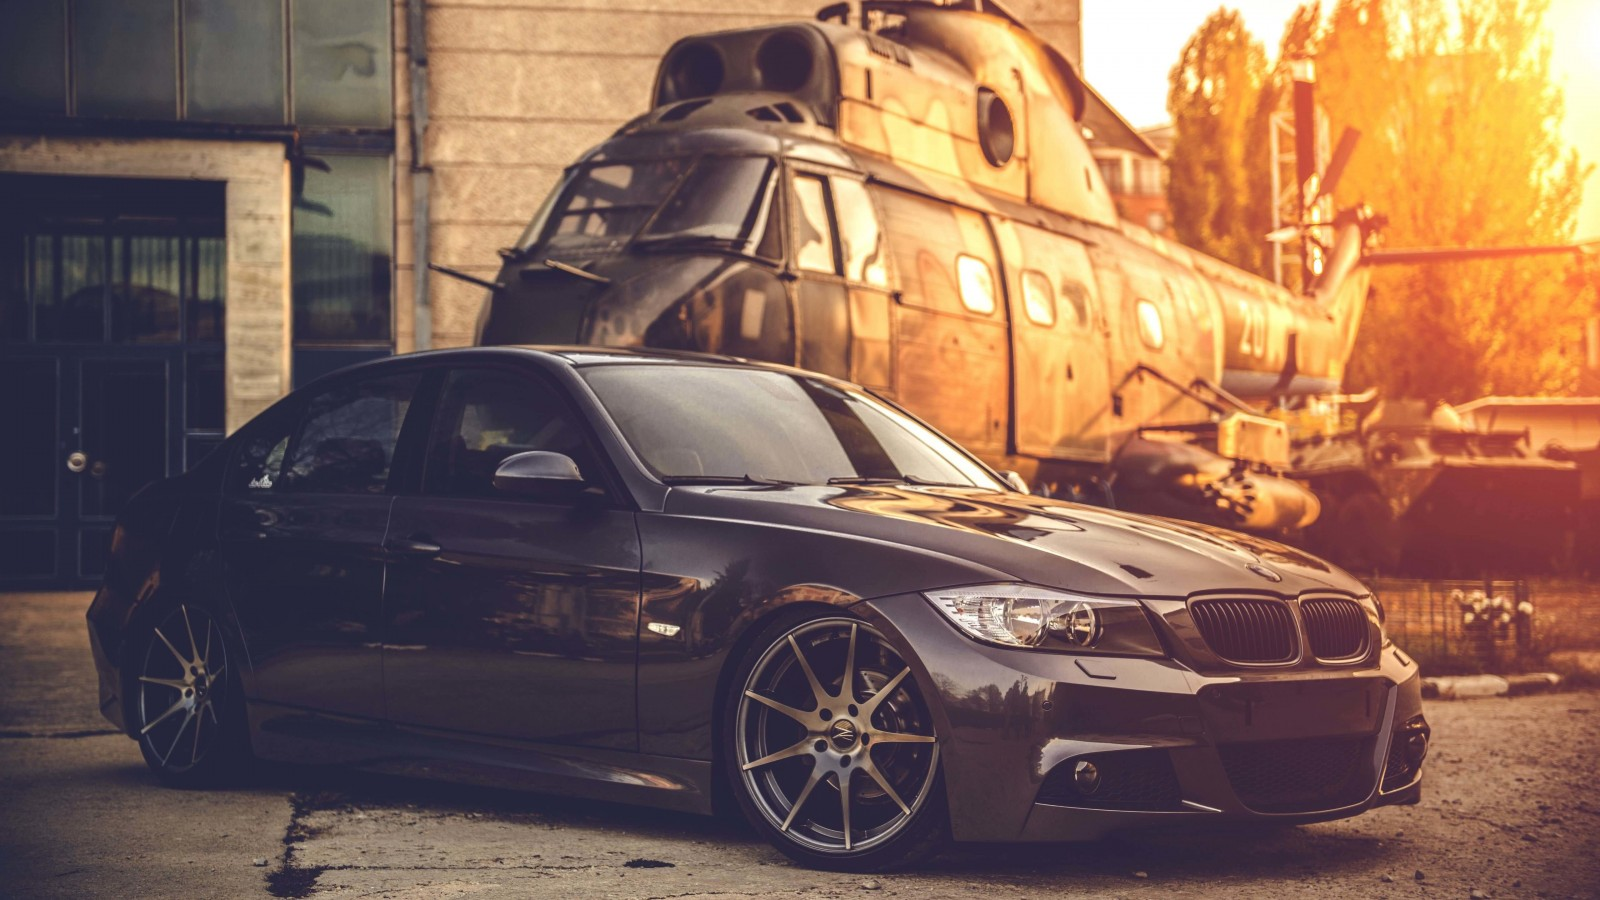 BMW E90 on Z-Performance Wheels Wallpaper for Desktop 1600x900